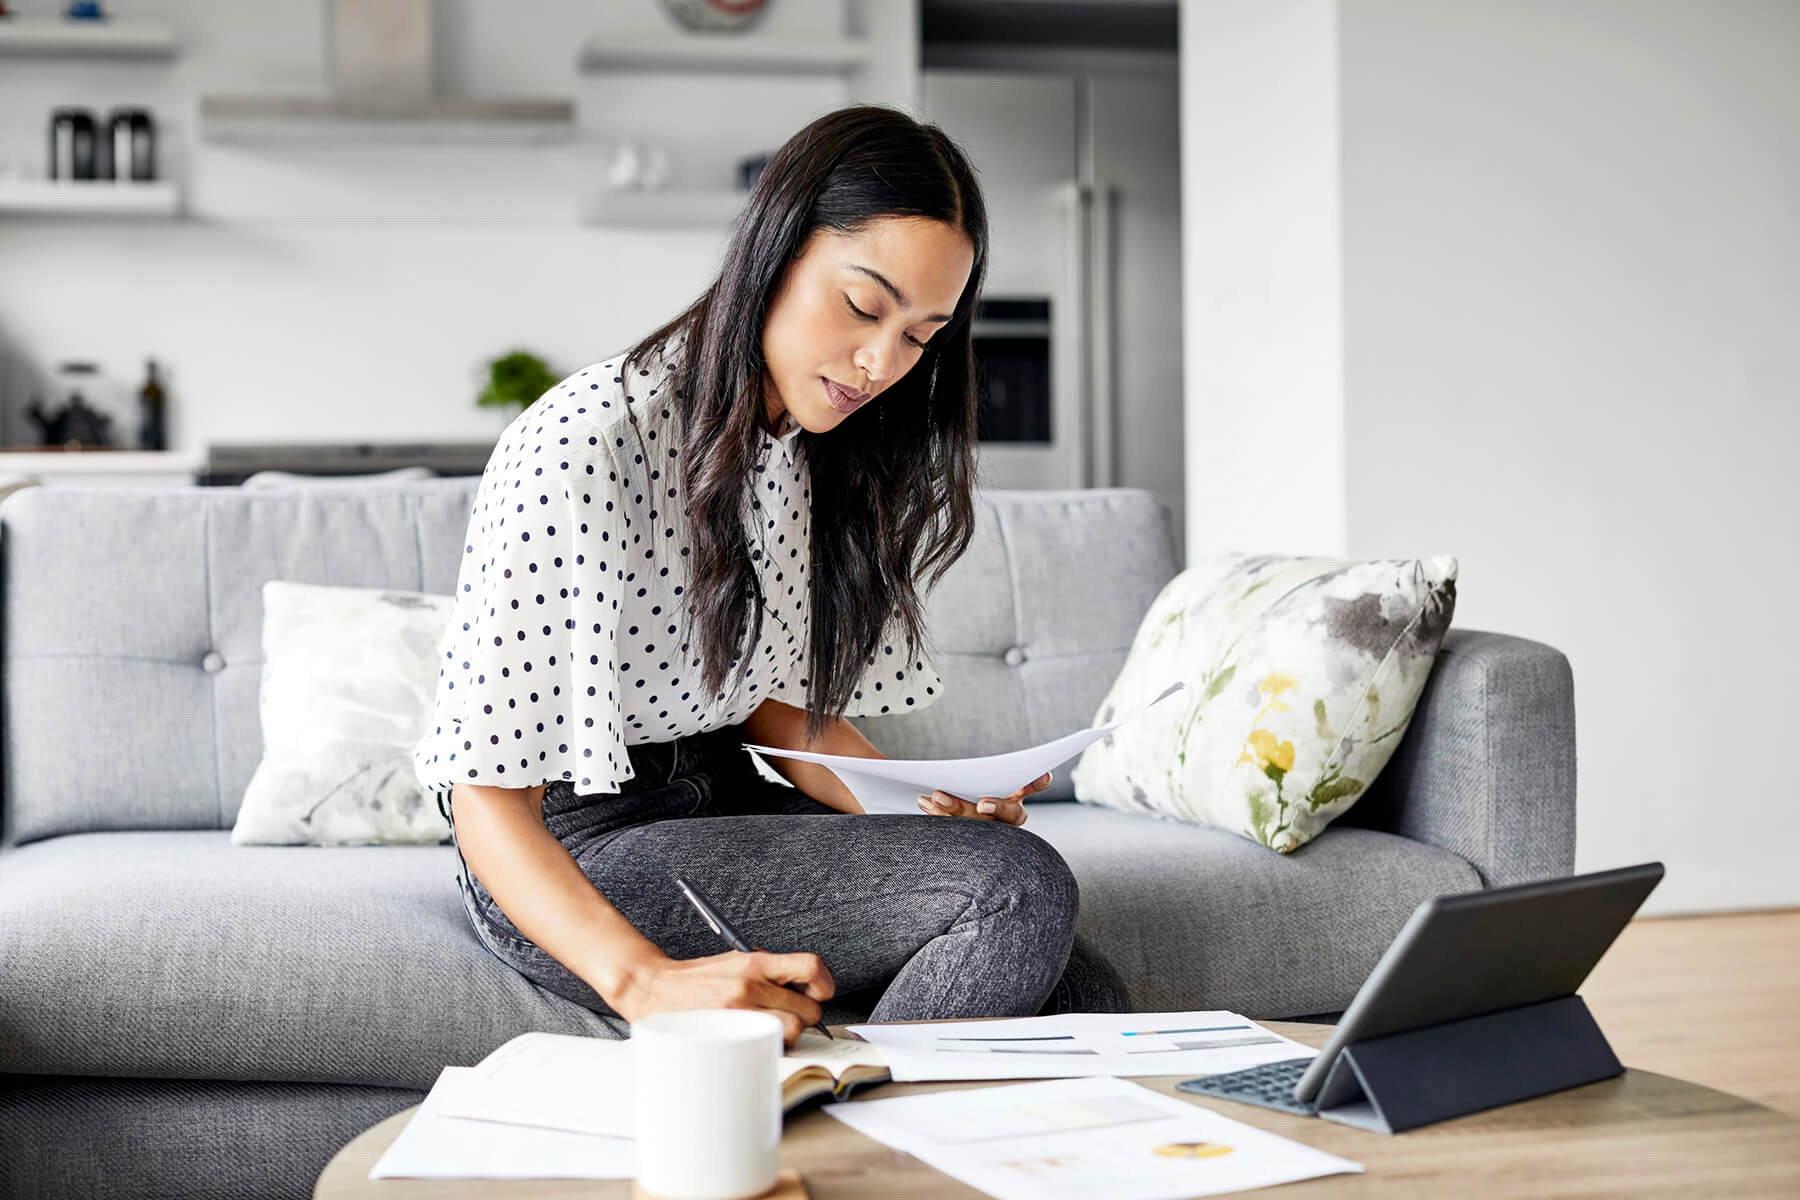 Blog 6 Questions to Ask Before Getting a Loan or CC